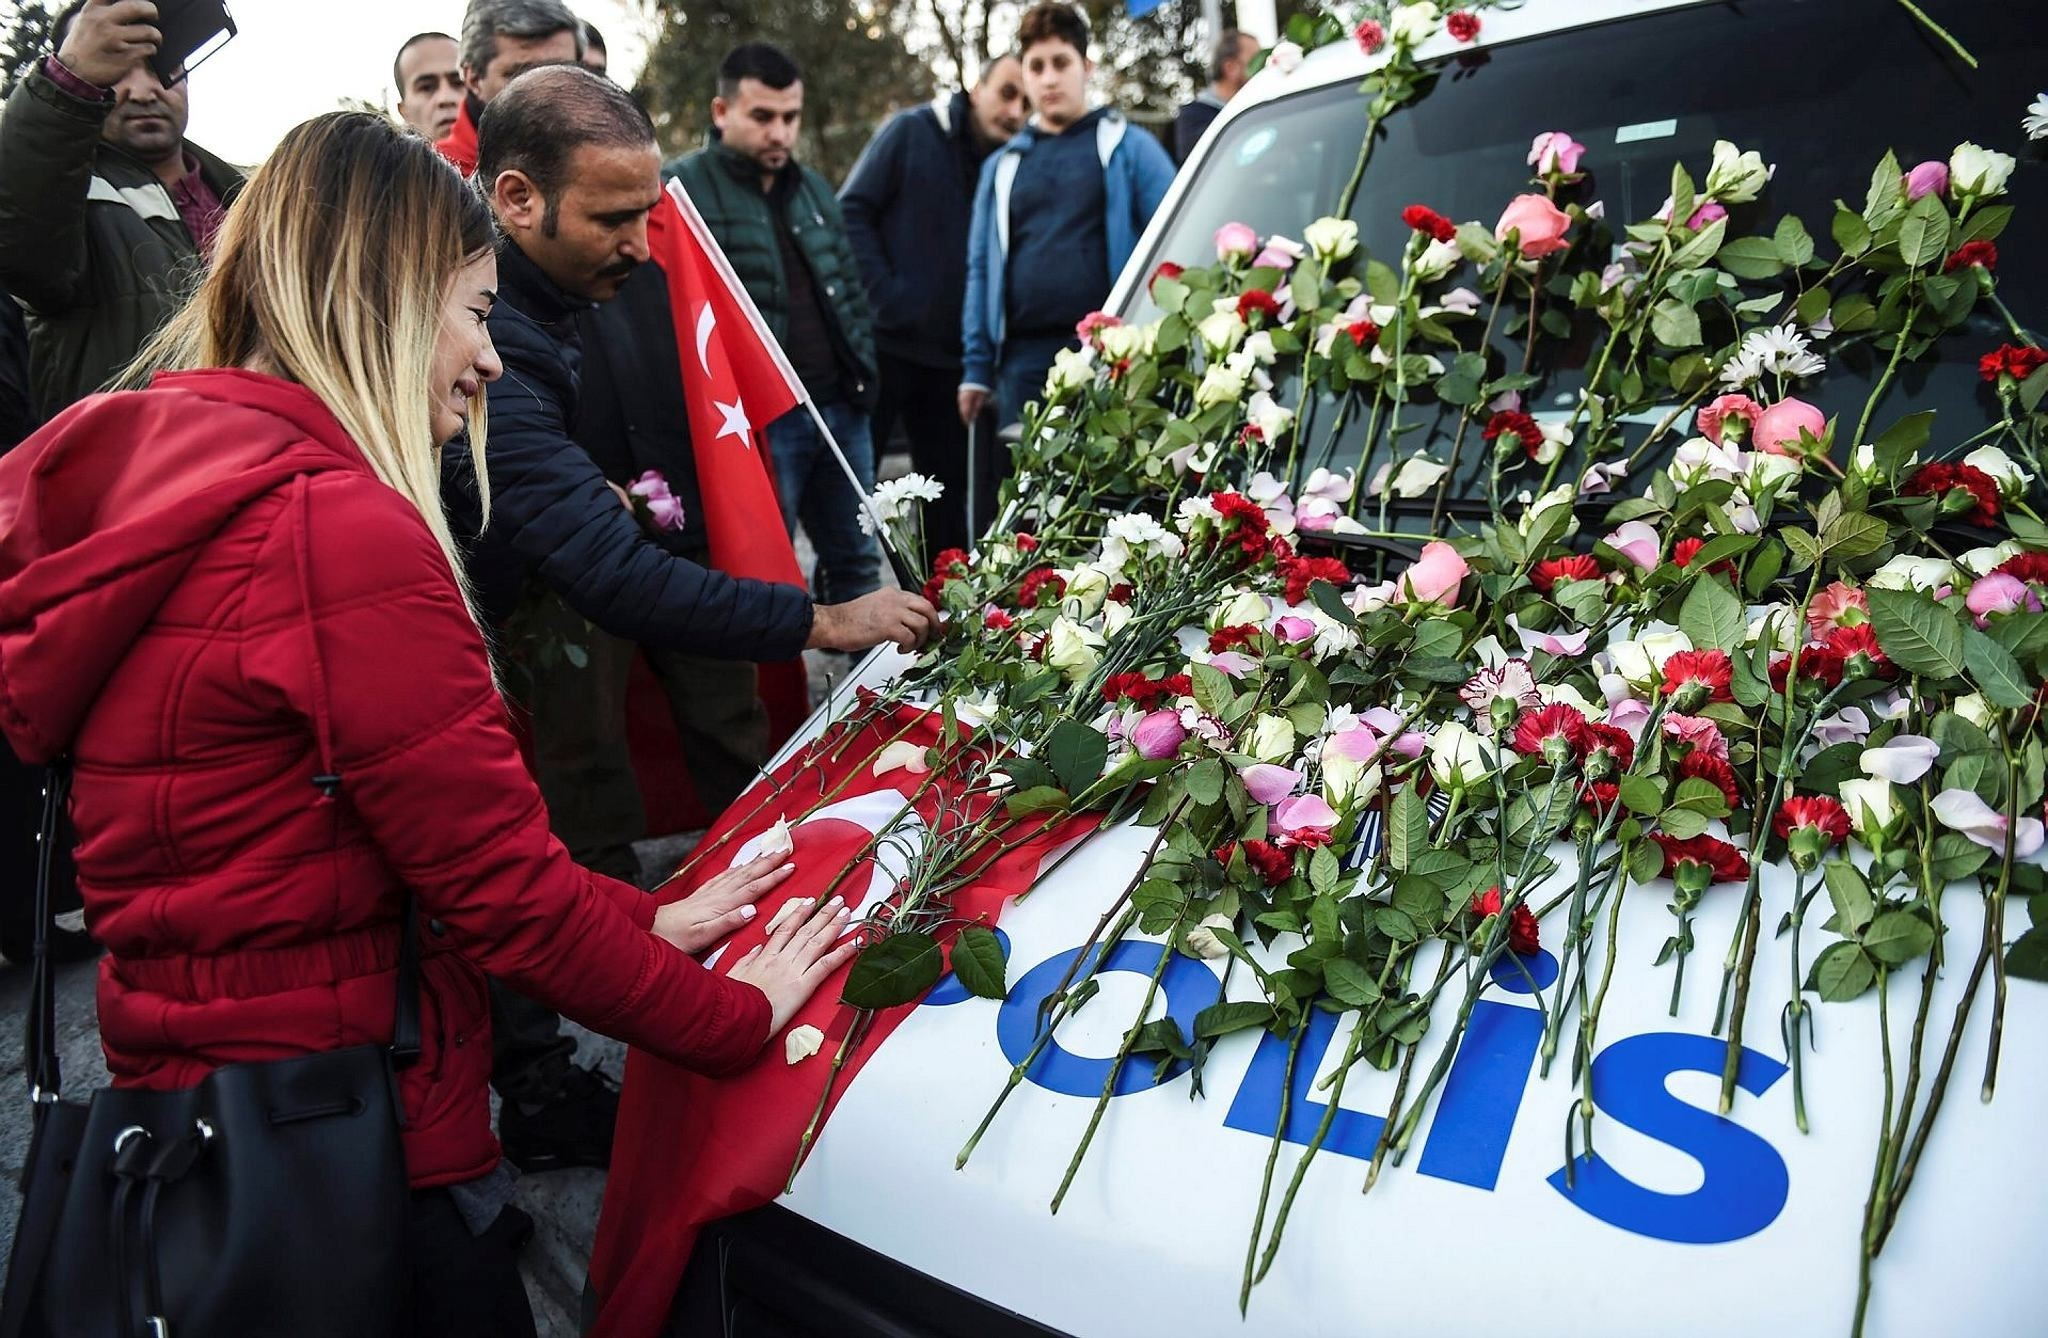 A woman cries next to a police car at the scene of the attack covered with flowers left by mourners. The public marched on Sunday against terror and to remember the victims.